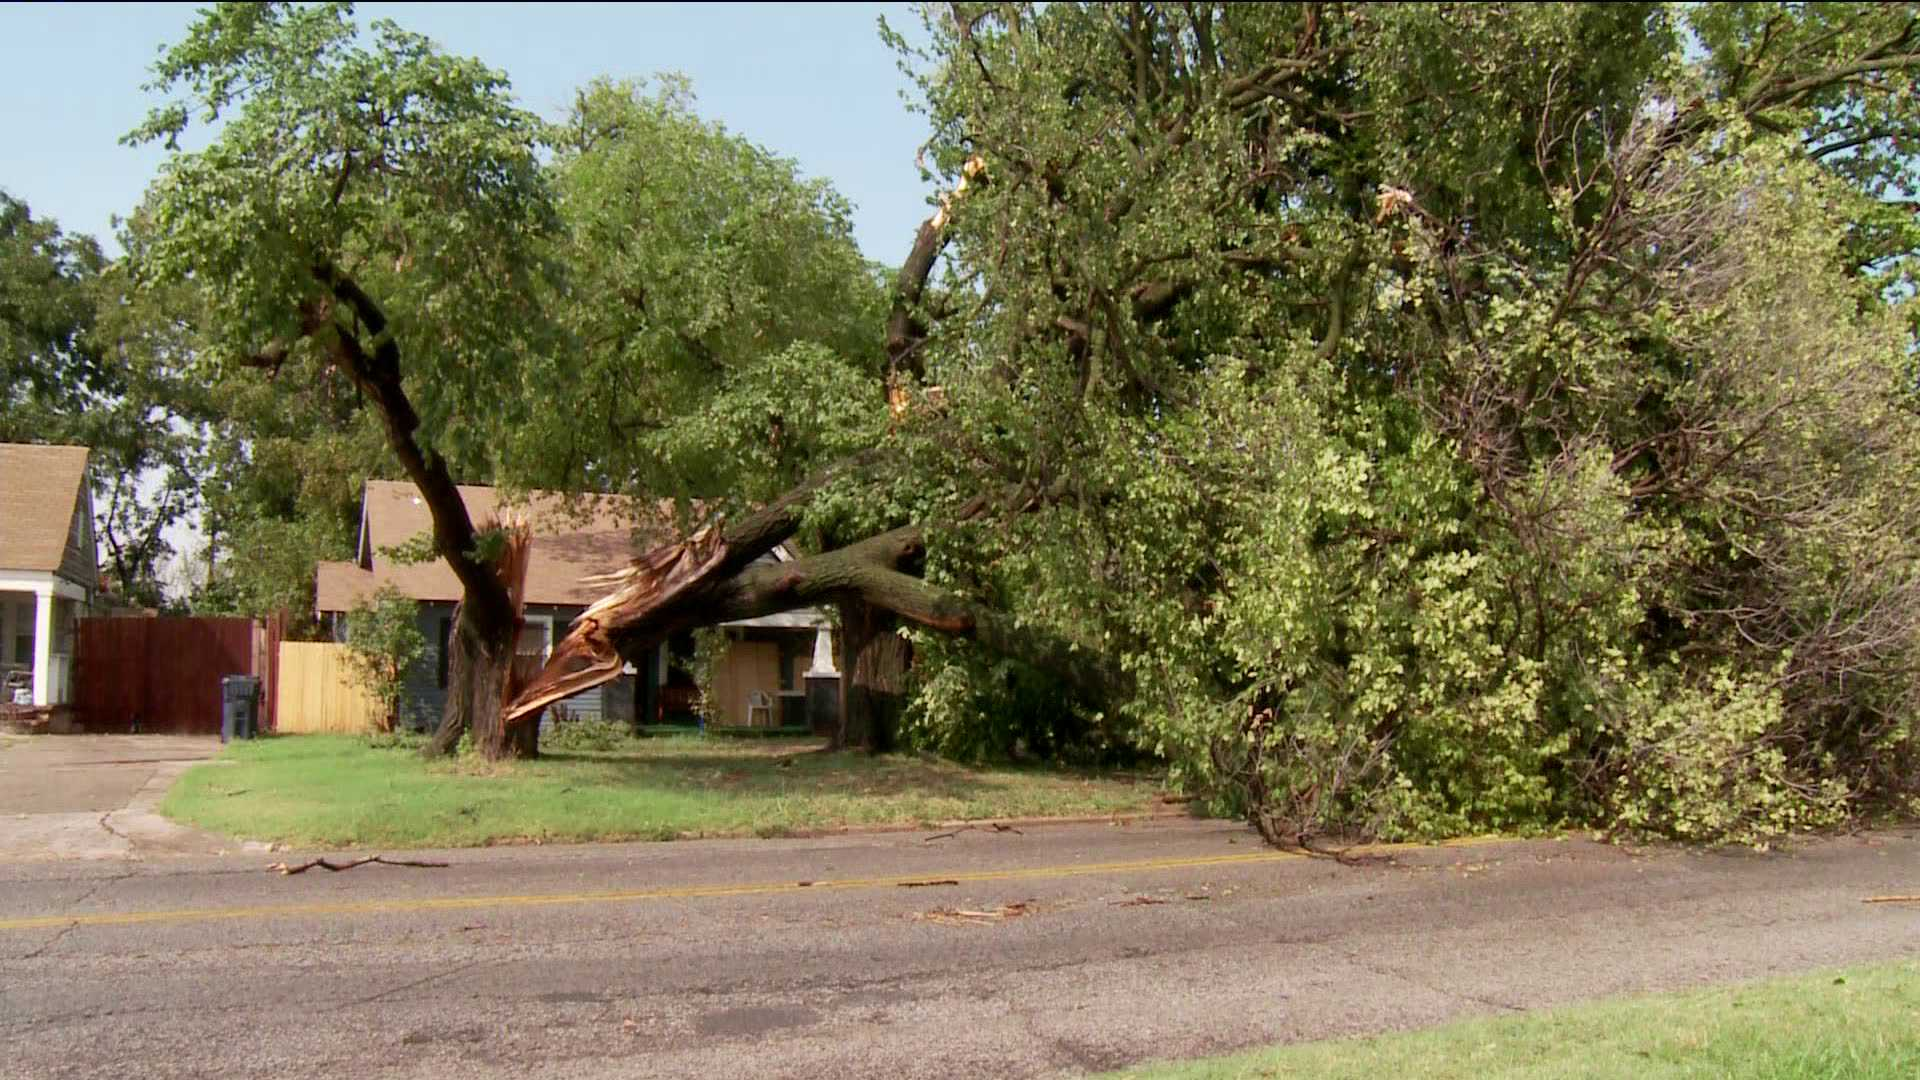 Winds take down trees - S.W. 24th St. and Shartel